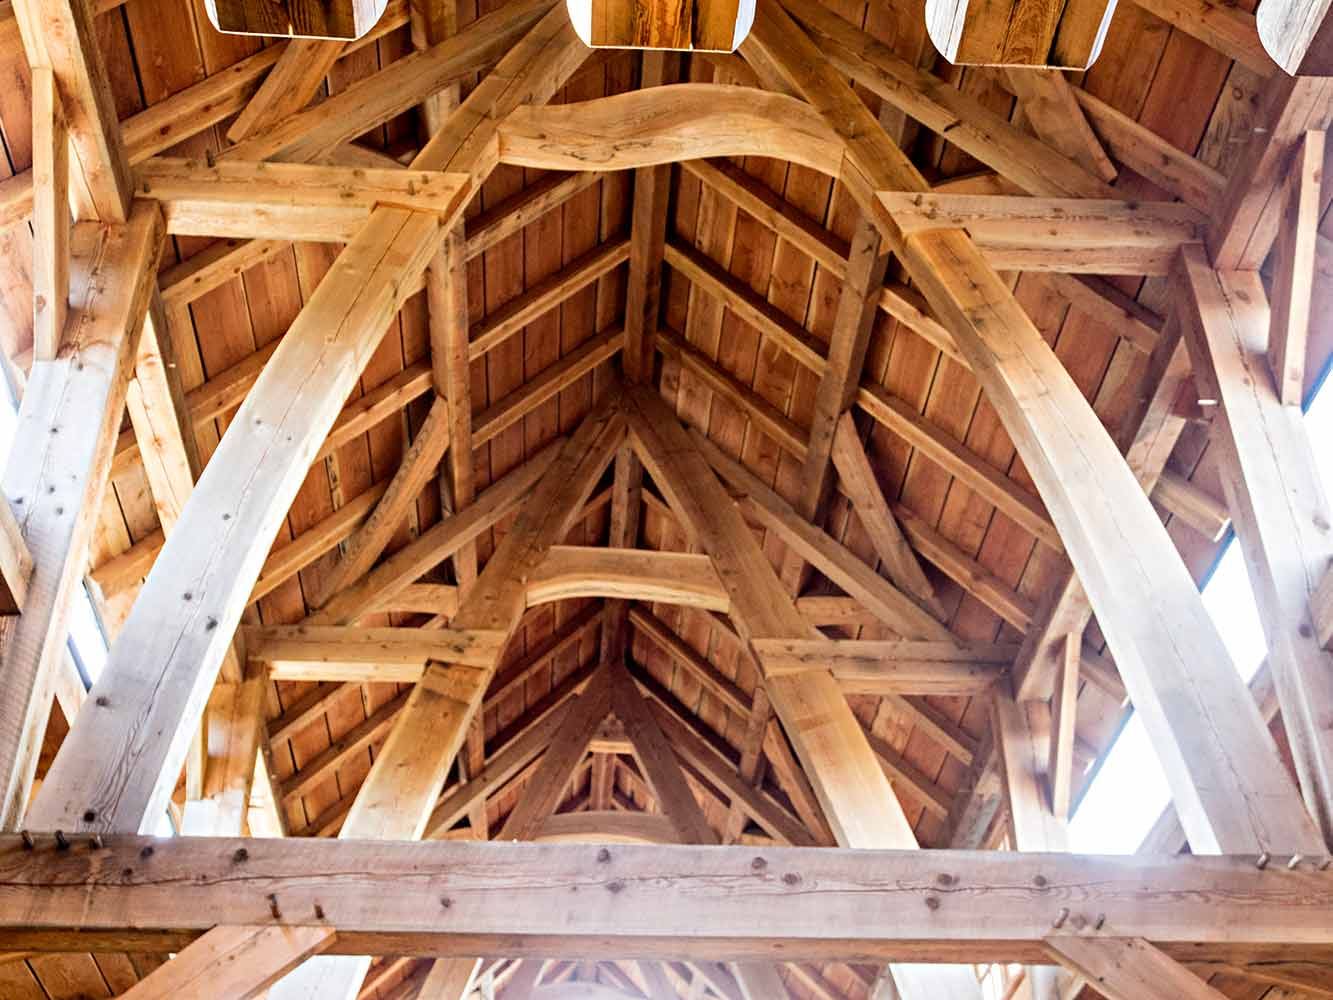 Oregon Timber Frame Barn 2014 | The Shelter Blog